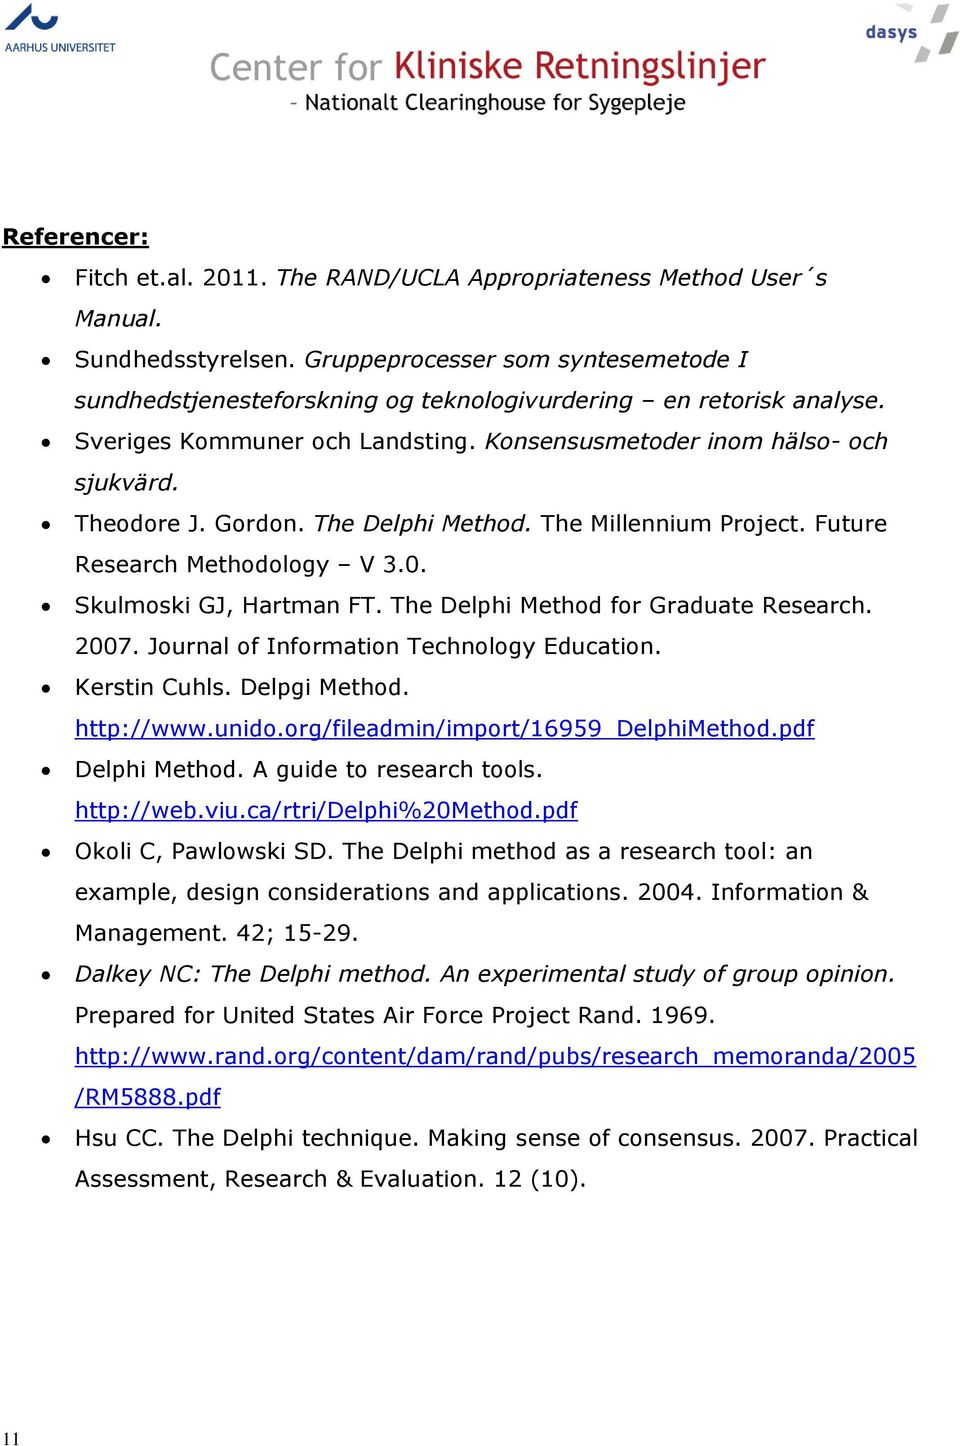 The Delphi Method. The Millennium Project. Future Research Methodology V 3.0. Skulmoski GJ, Hartman FT. The Delphi Method for Graduate Research. 2007. Journal of Information Technology Education.